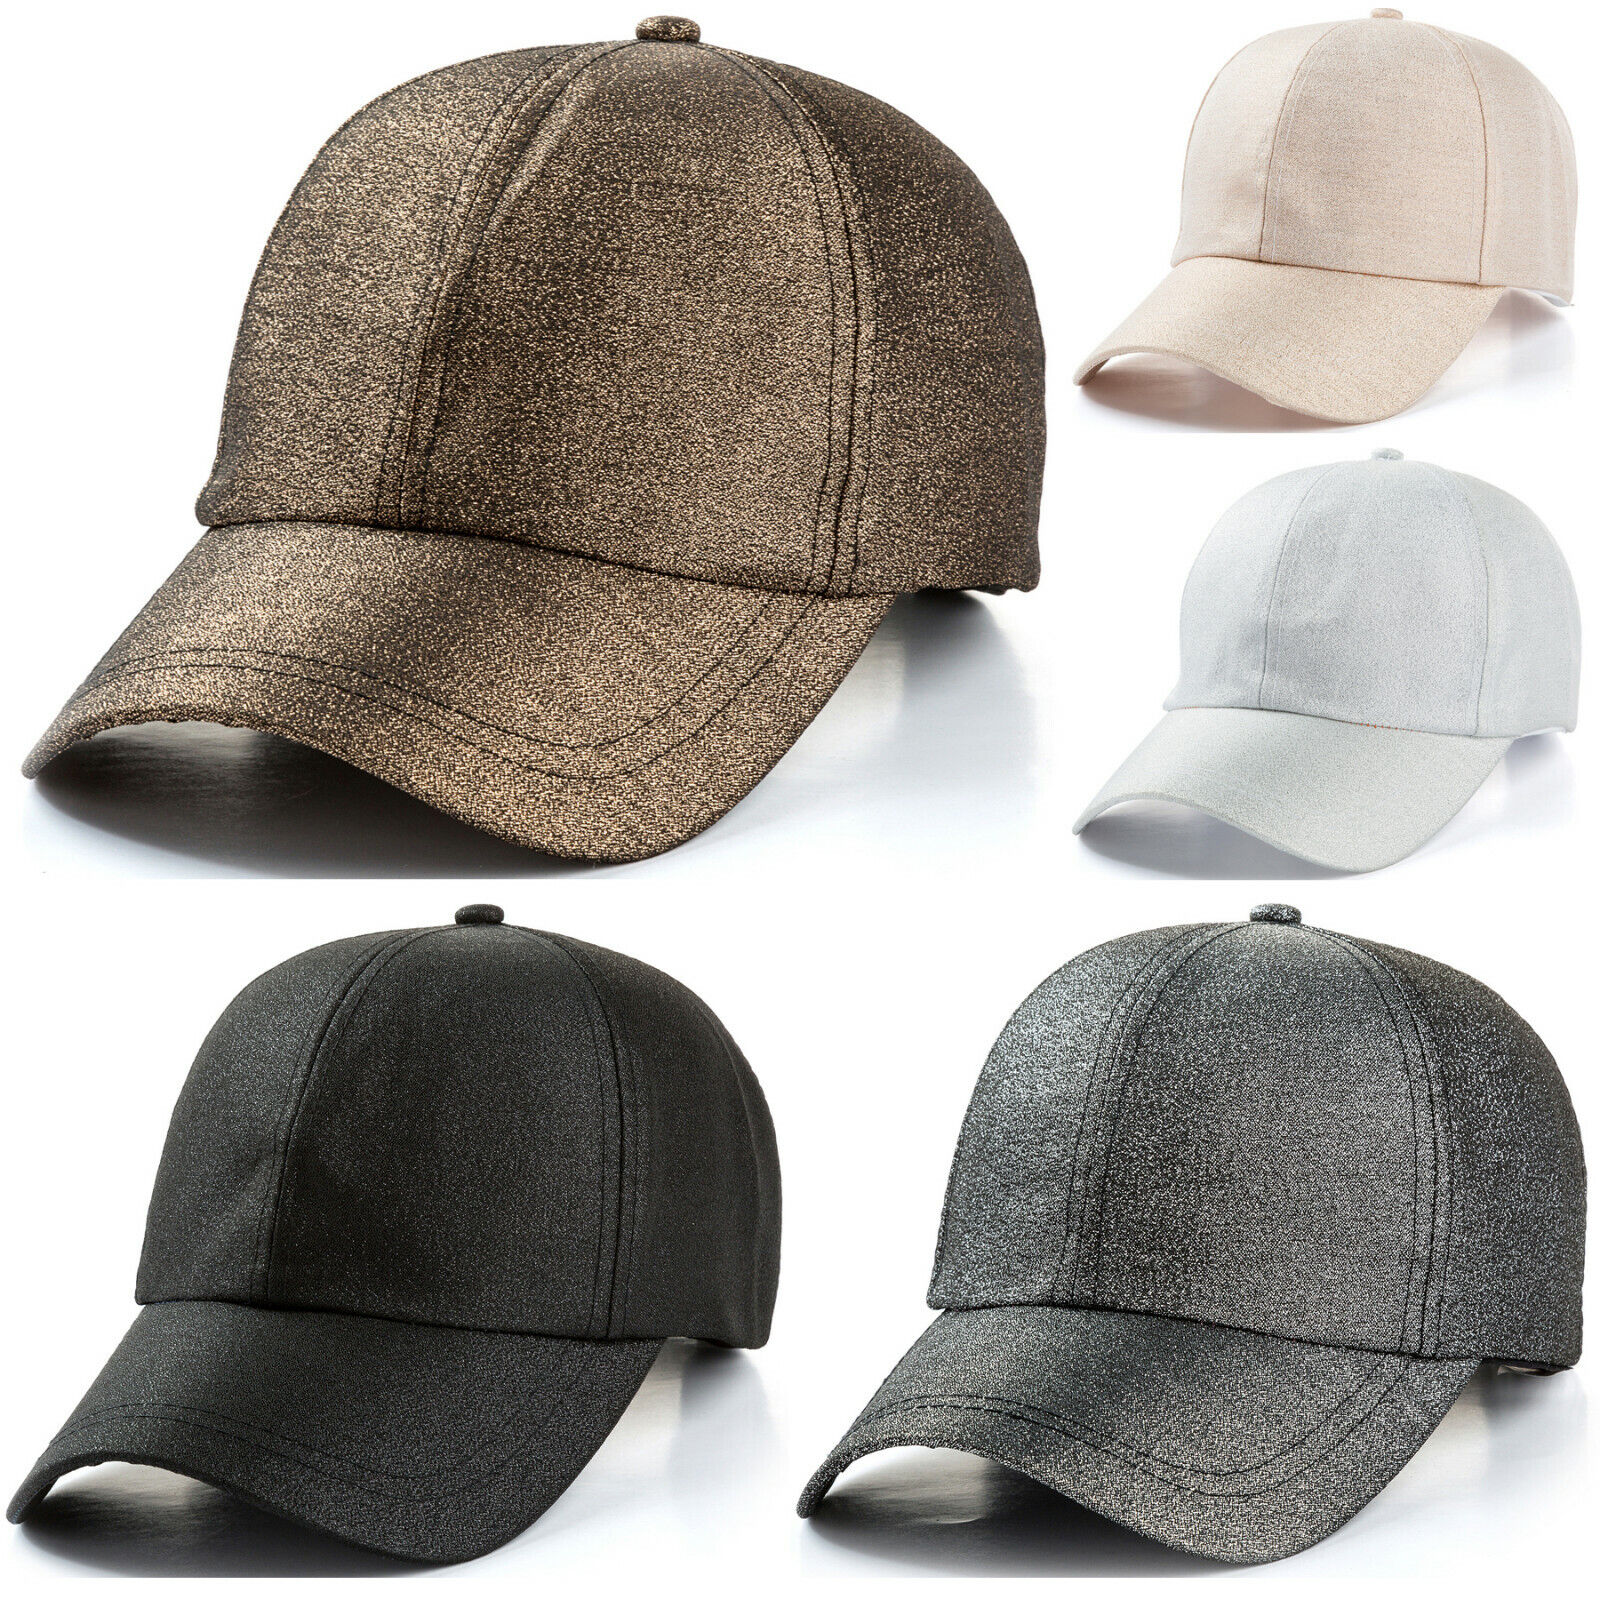 Women's Solid Color Adjustable Shiny Mercerised Cotton Baseball Cap Clothing, Shoes & Accessories